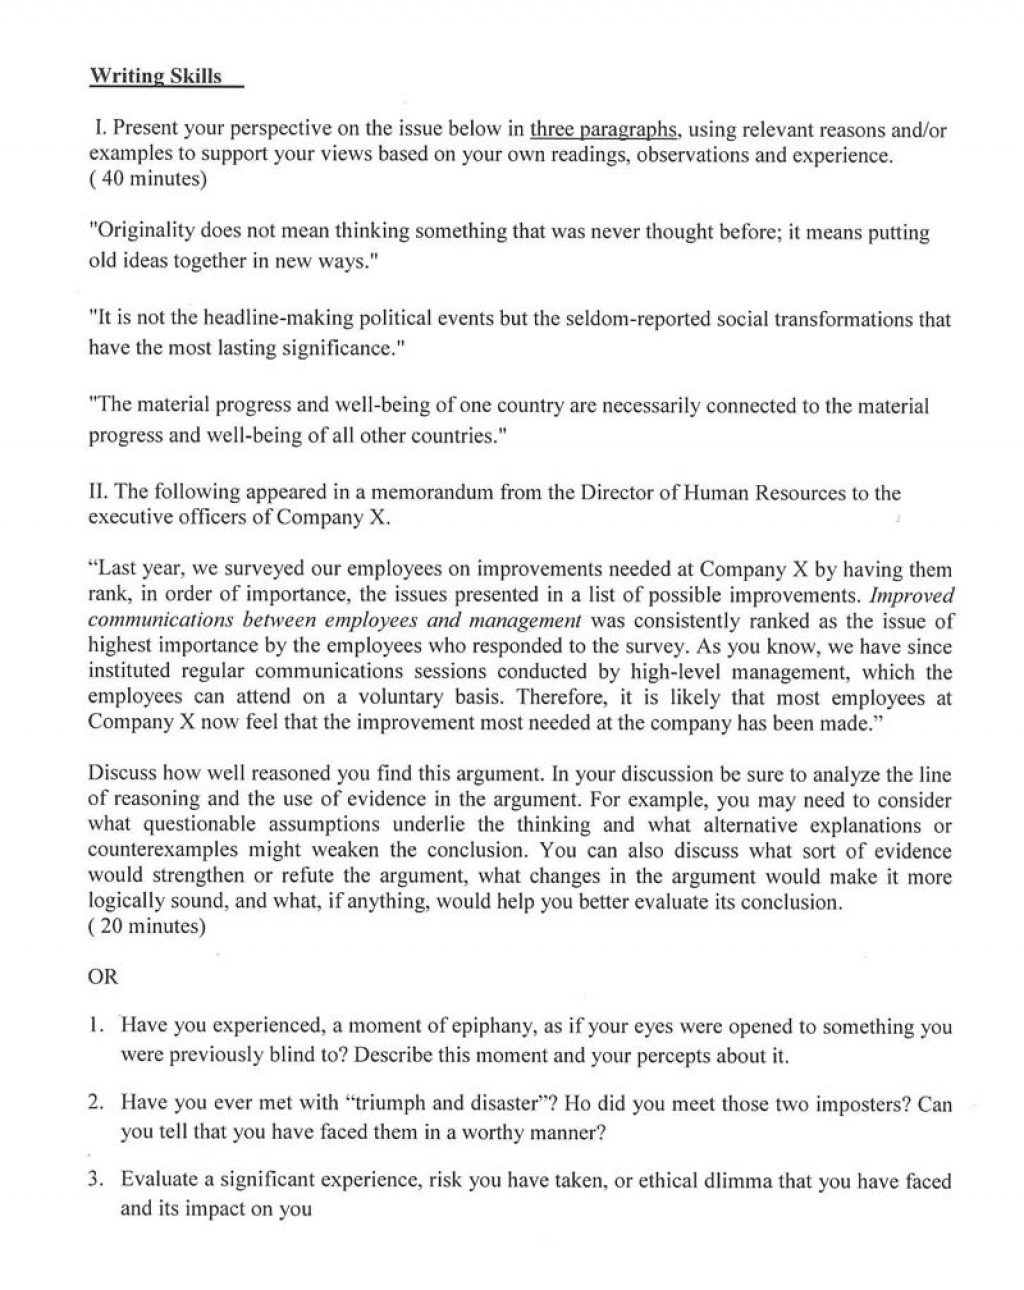 009 Human Well Being Essay Example Phenomenal Environment Information For Large